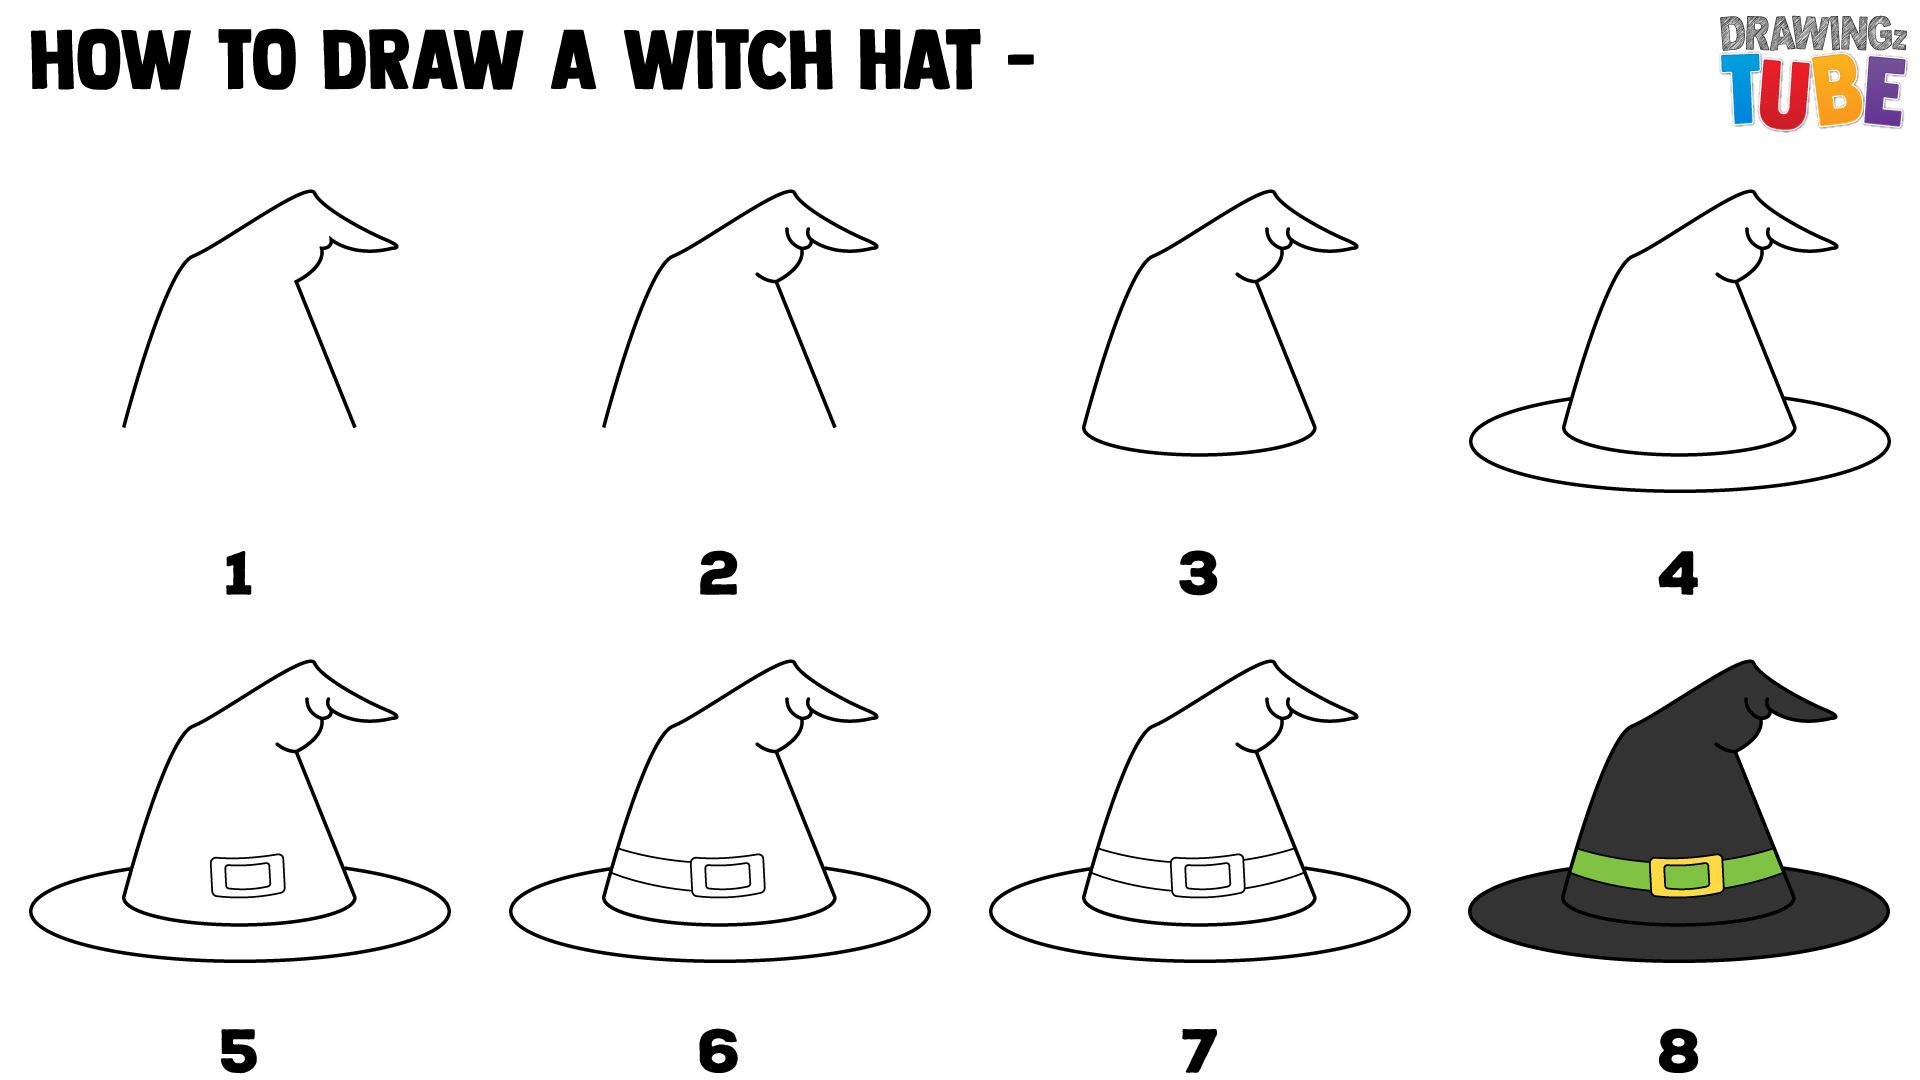 How To Draw A Witch Hat For Kids Draw A Witch How To Draw A Witch How To Draw A Witch Hat